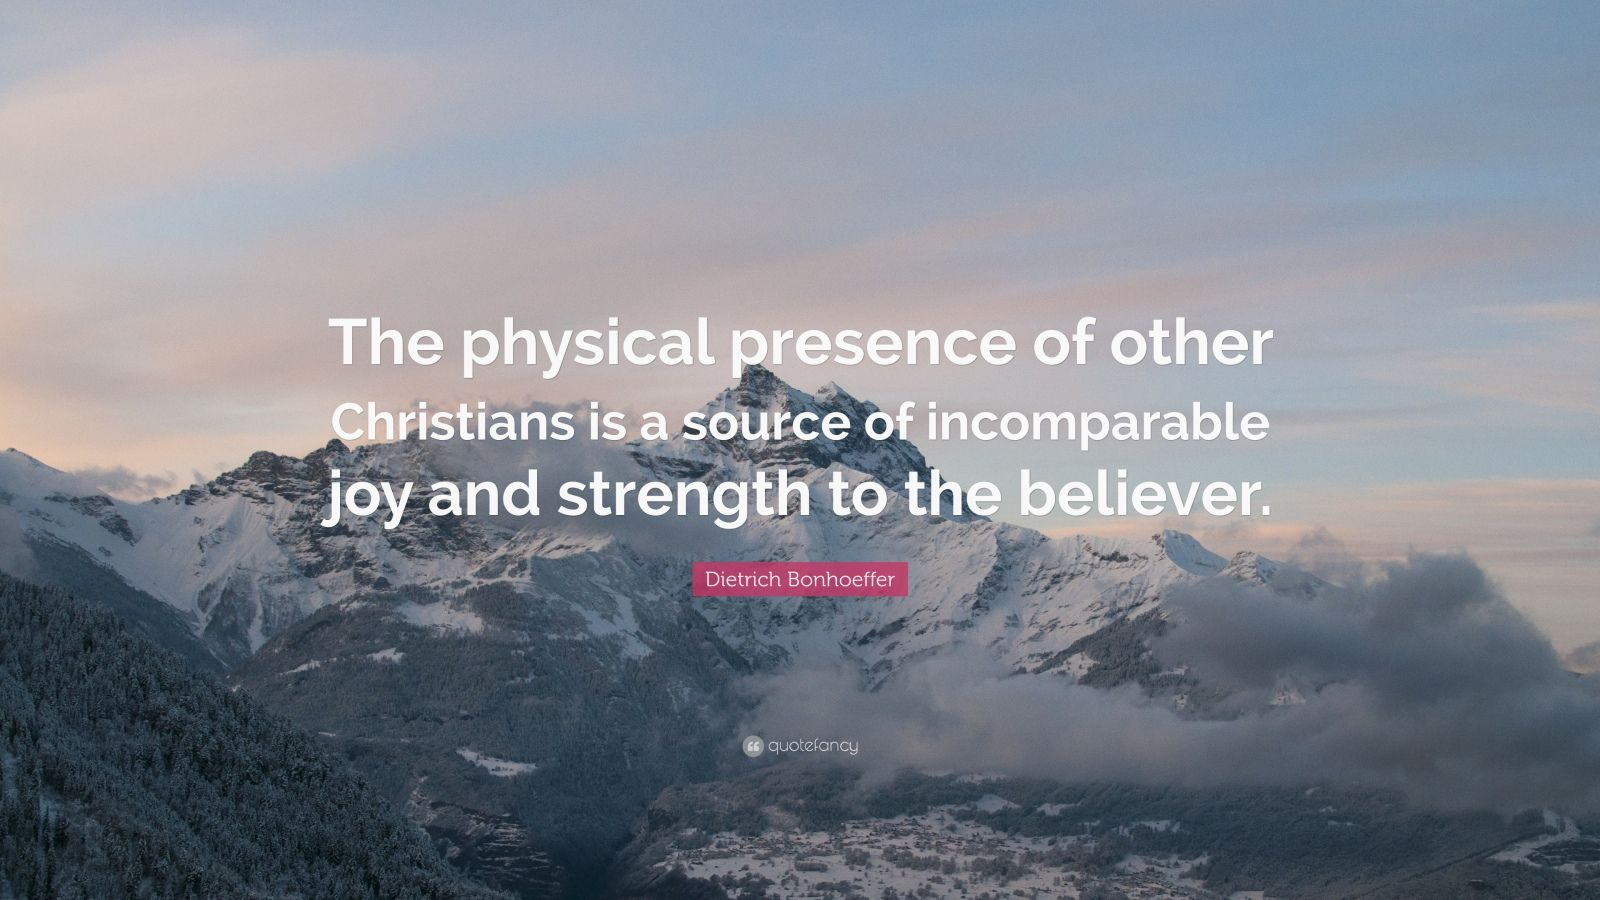 """Dietrich Bonhoeffer Quote: """"The physical presence of other Christians is a source of incomparable joy and strength to the believer."""""""